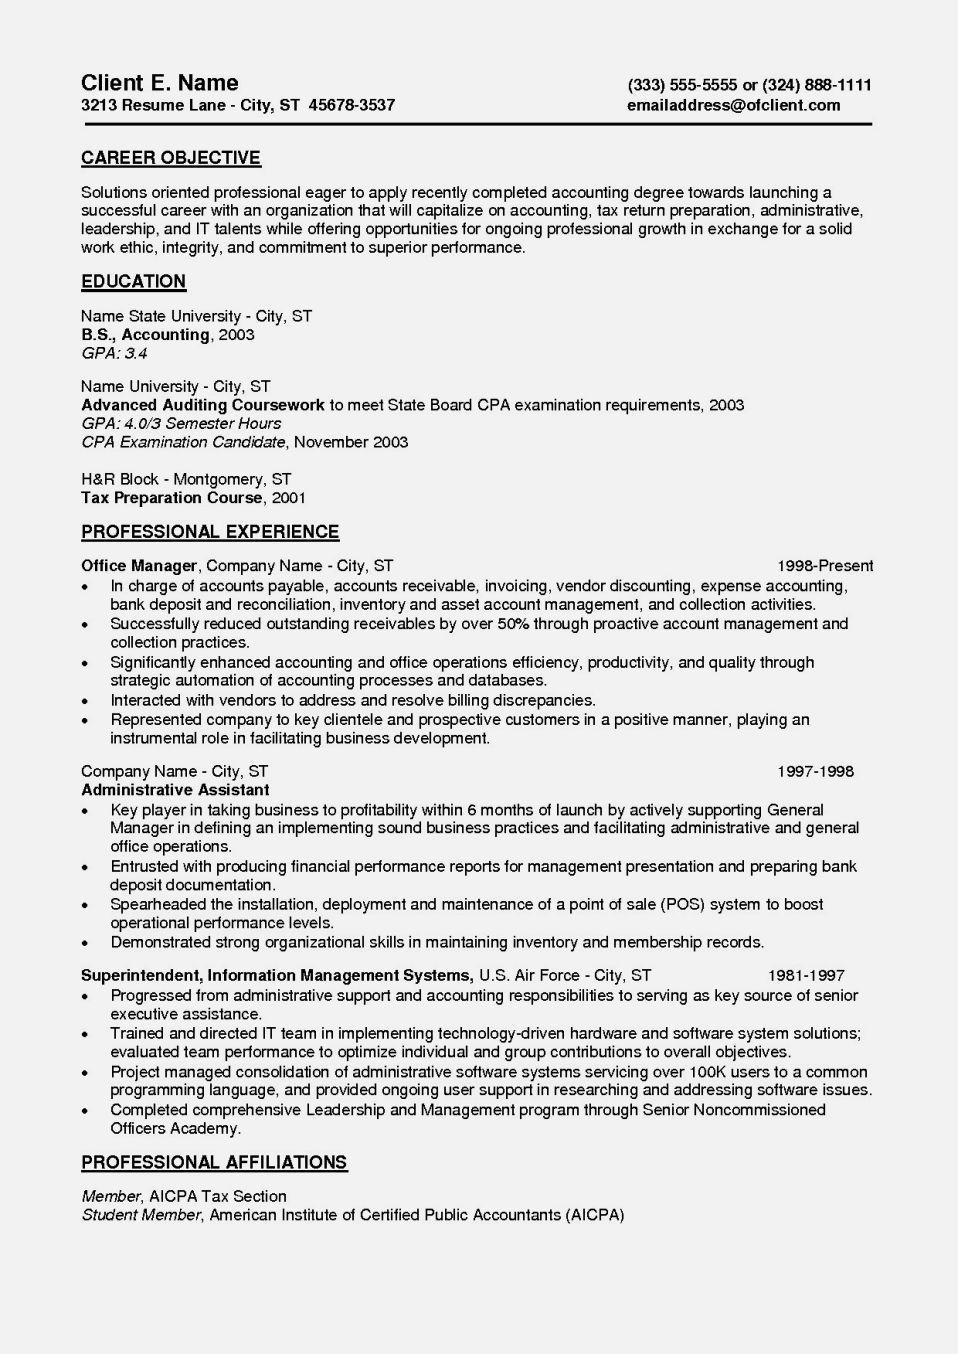 Entry Level Accounting Resume Resume Template Cover Letter Best Entry Level Accounting Resume Resume Job Resume Examples Job Resume Samples Resume Examples